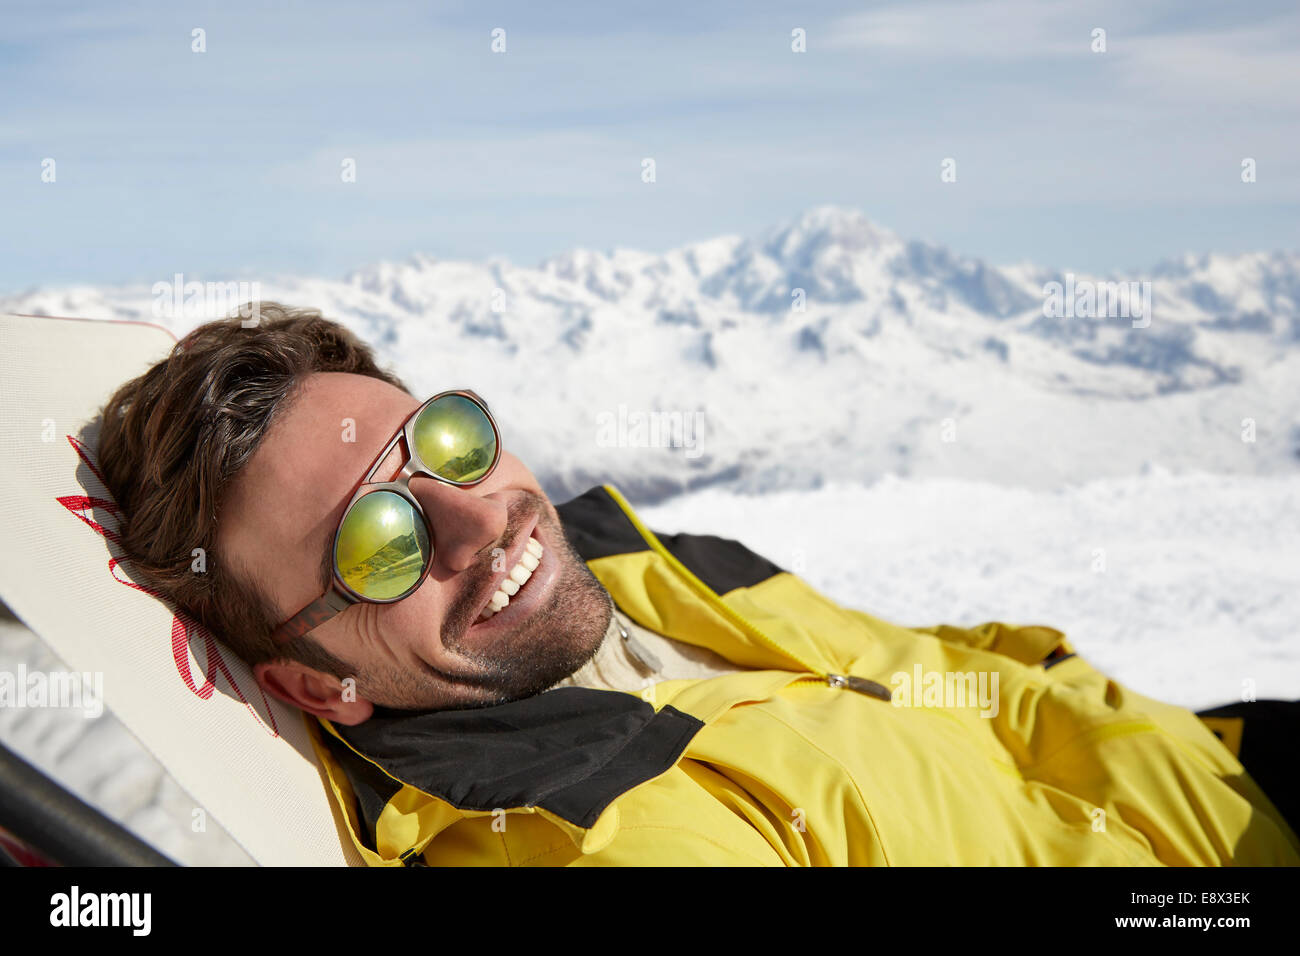 Man laying on a chair in the snow - Stock Image